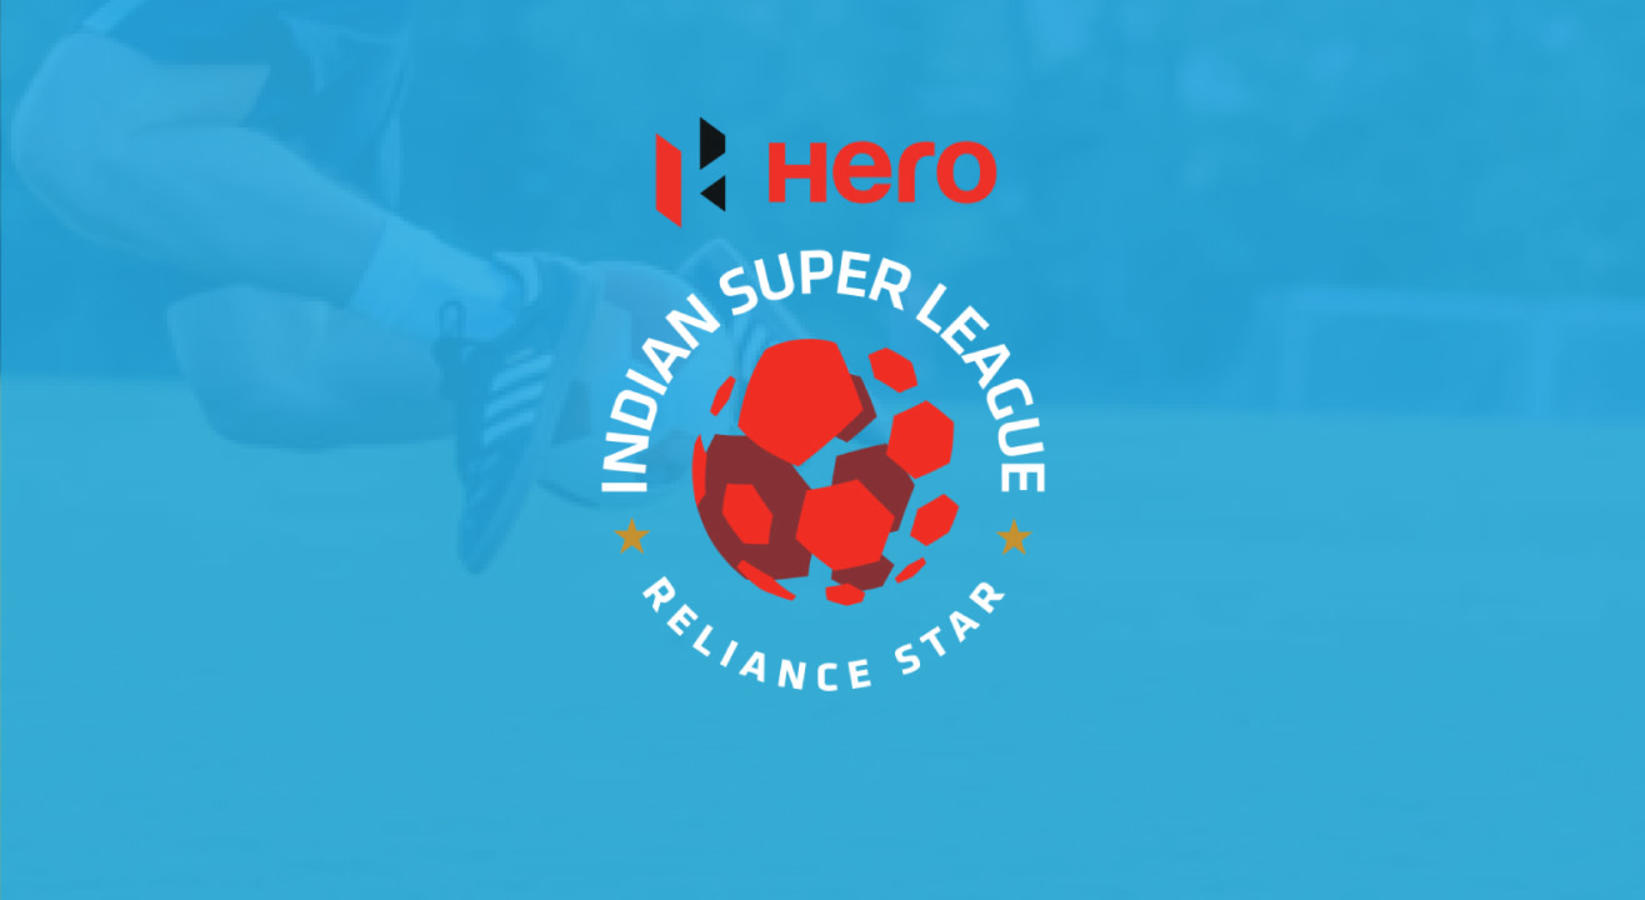 Indian Super League 2019-2020: Tickets, Memberships, Season Tickets, Ticket Offers, Schedule & More